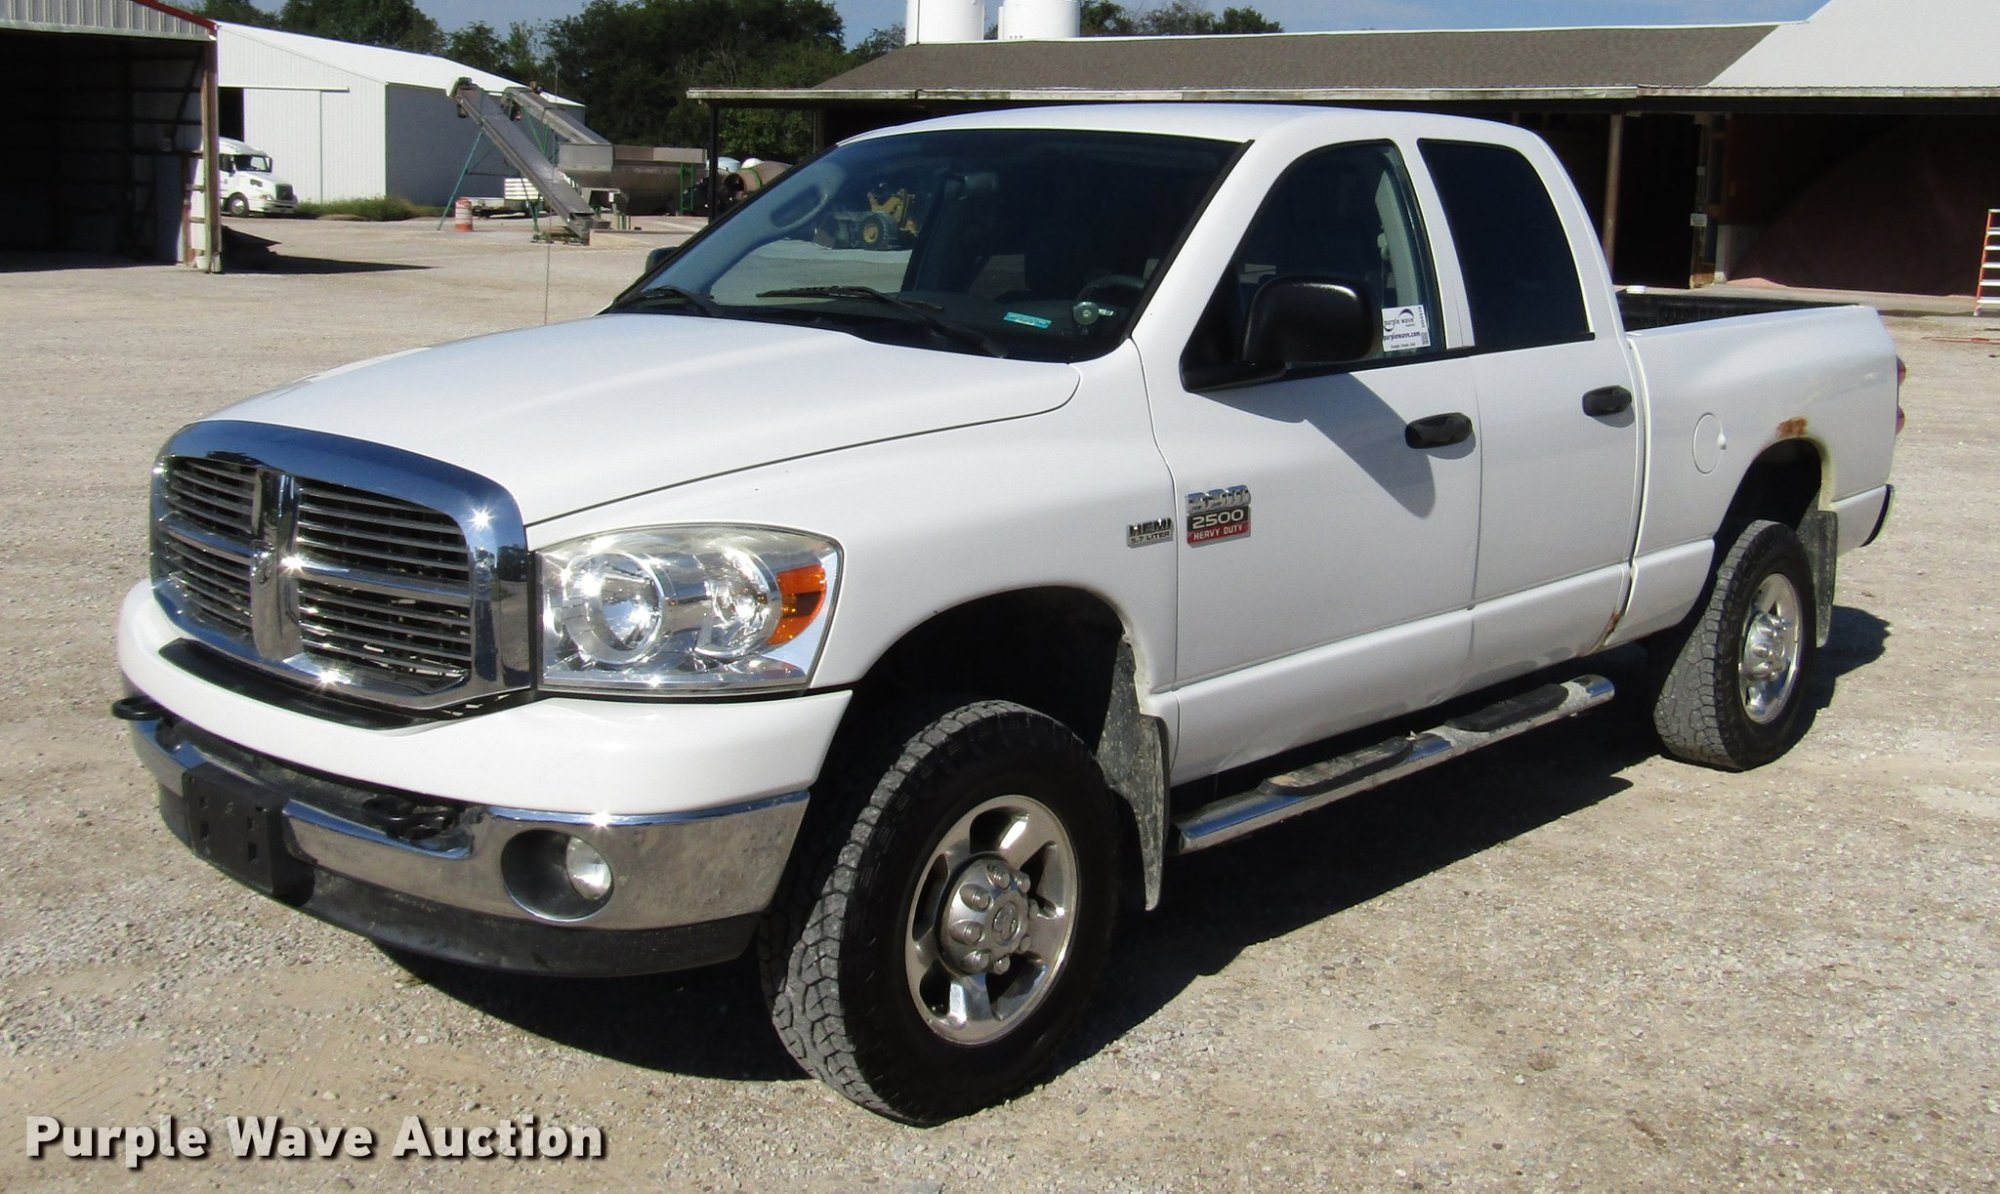 hight resolution of dd4310 image for item dd4310 2009 dodge ram 2500 quad cab